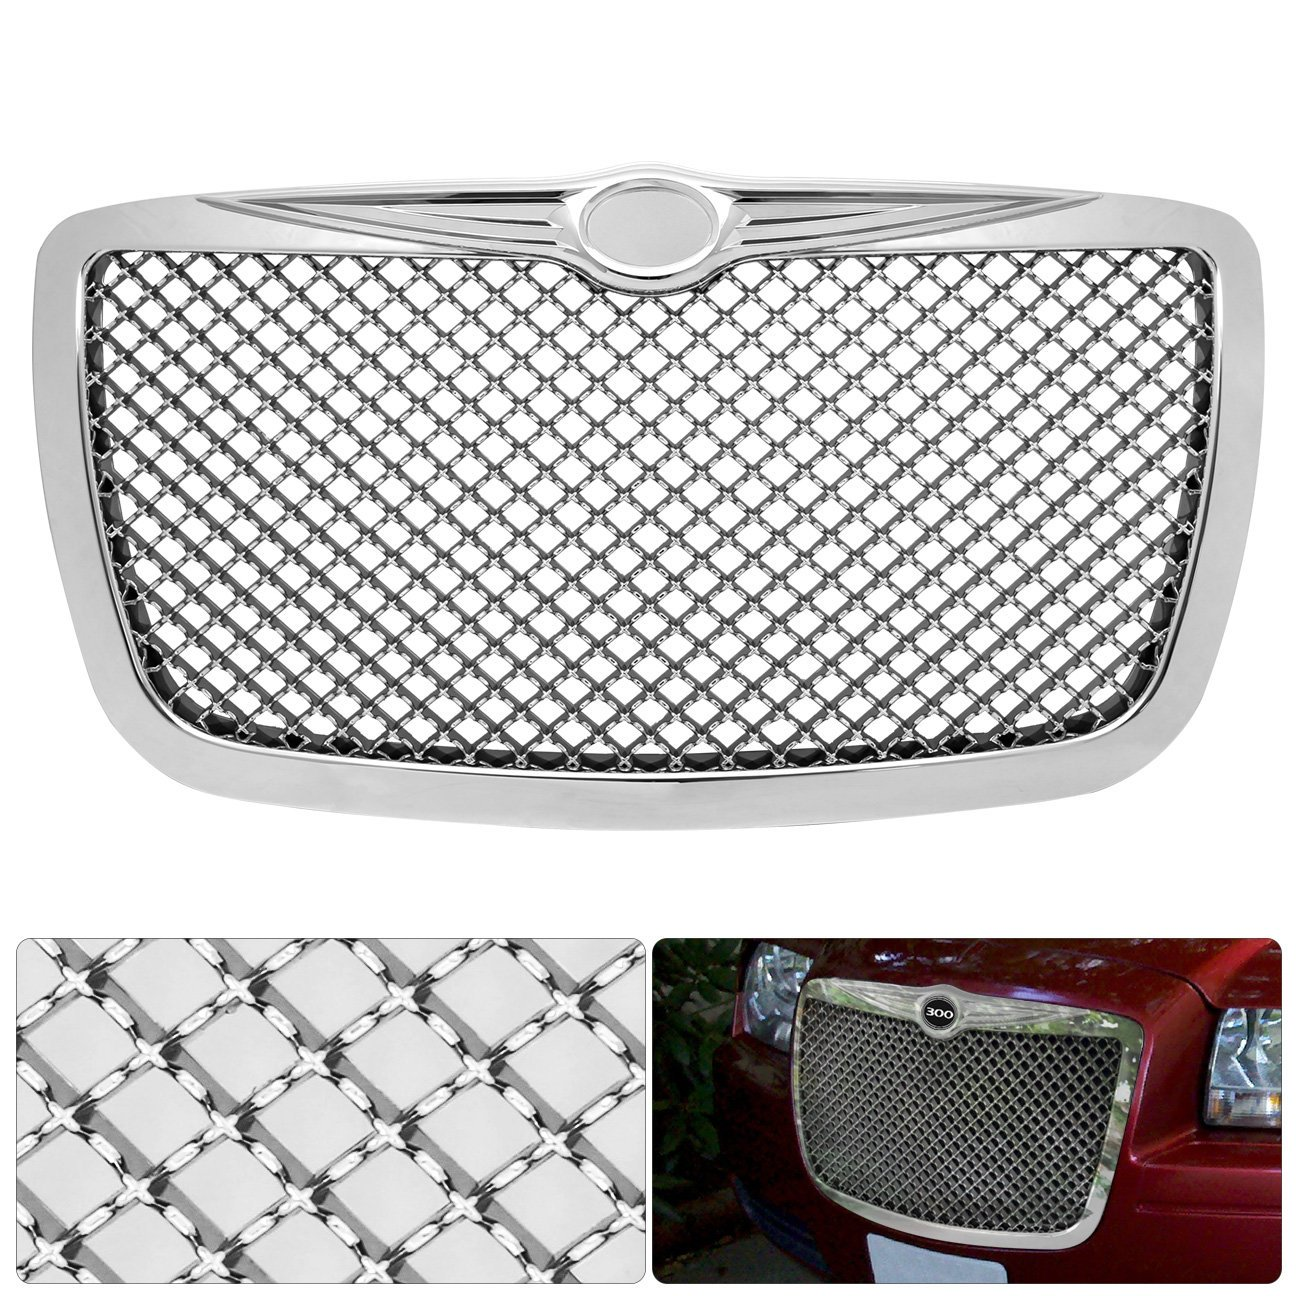 For Chrysler 300 300C Badgeless Chrome Diamond Mesh Front Hood Bumper Grille Grill Replacement Upgrade AJP Distributors